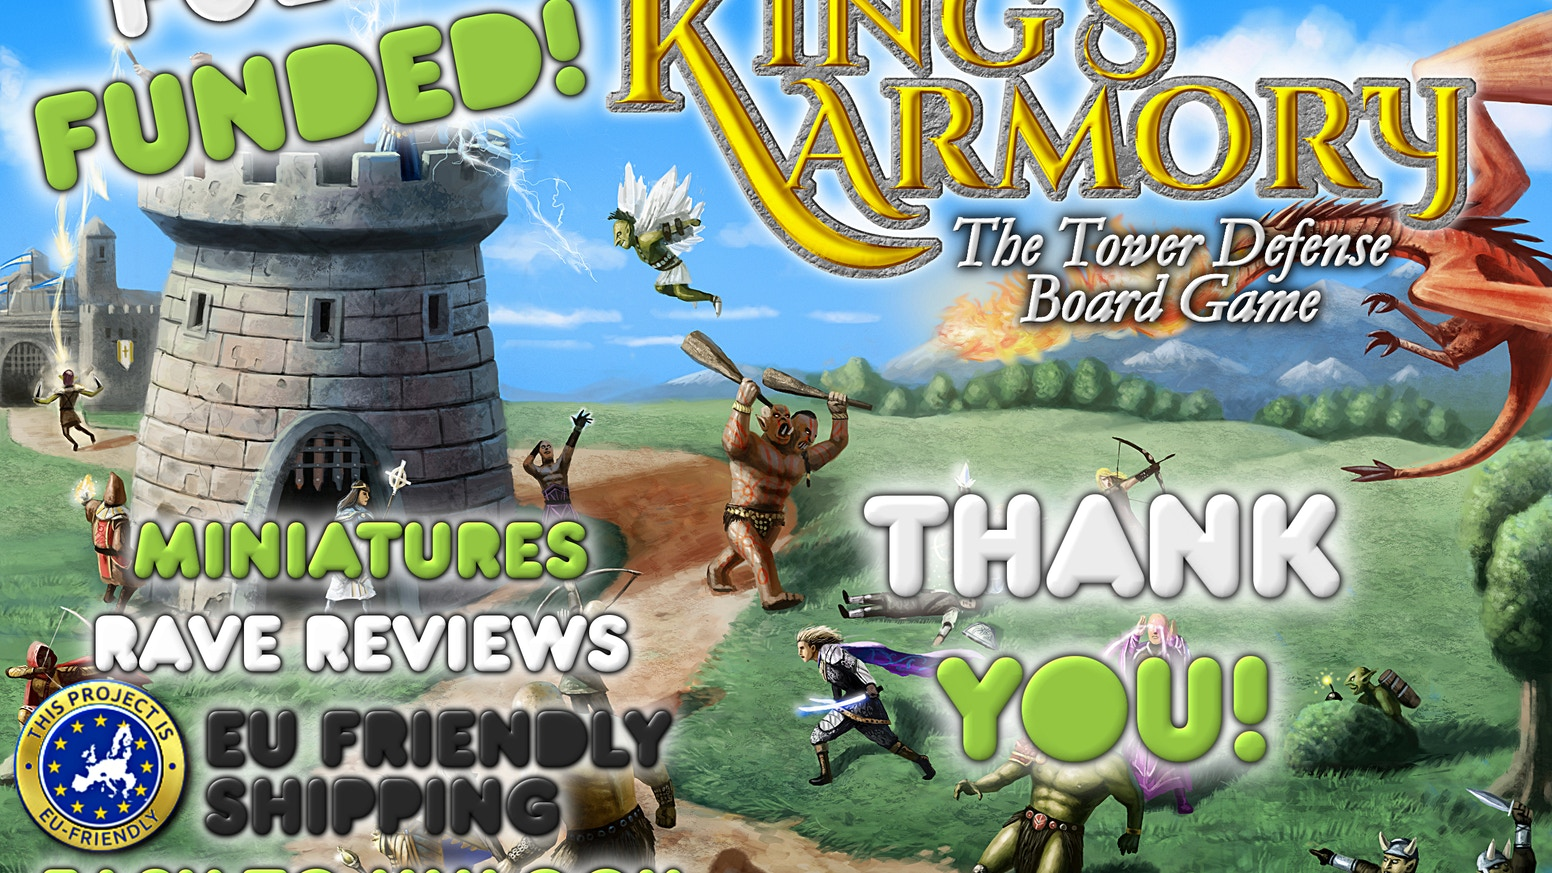 The King's Armory - the Tower Defense Board Game by John